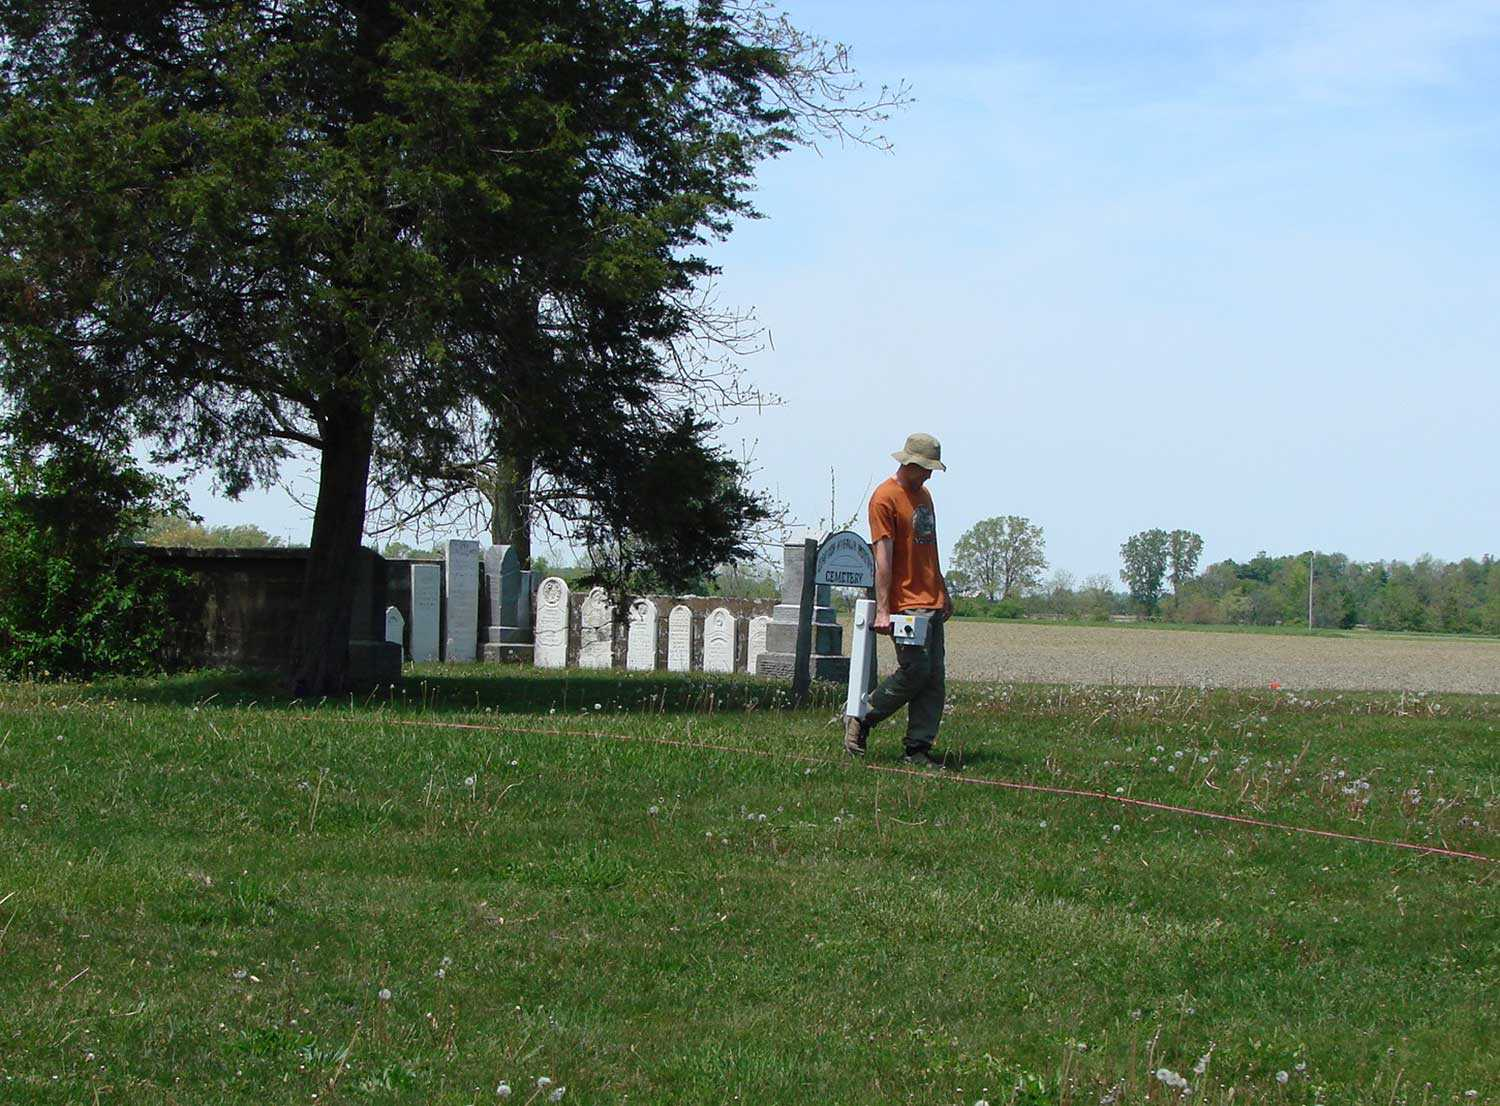 Gradiometer survey method being used at the British American Institute Cemetery located across the road from the Trust's Uncle Tom's Cabin Historic Site in Dresden